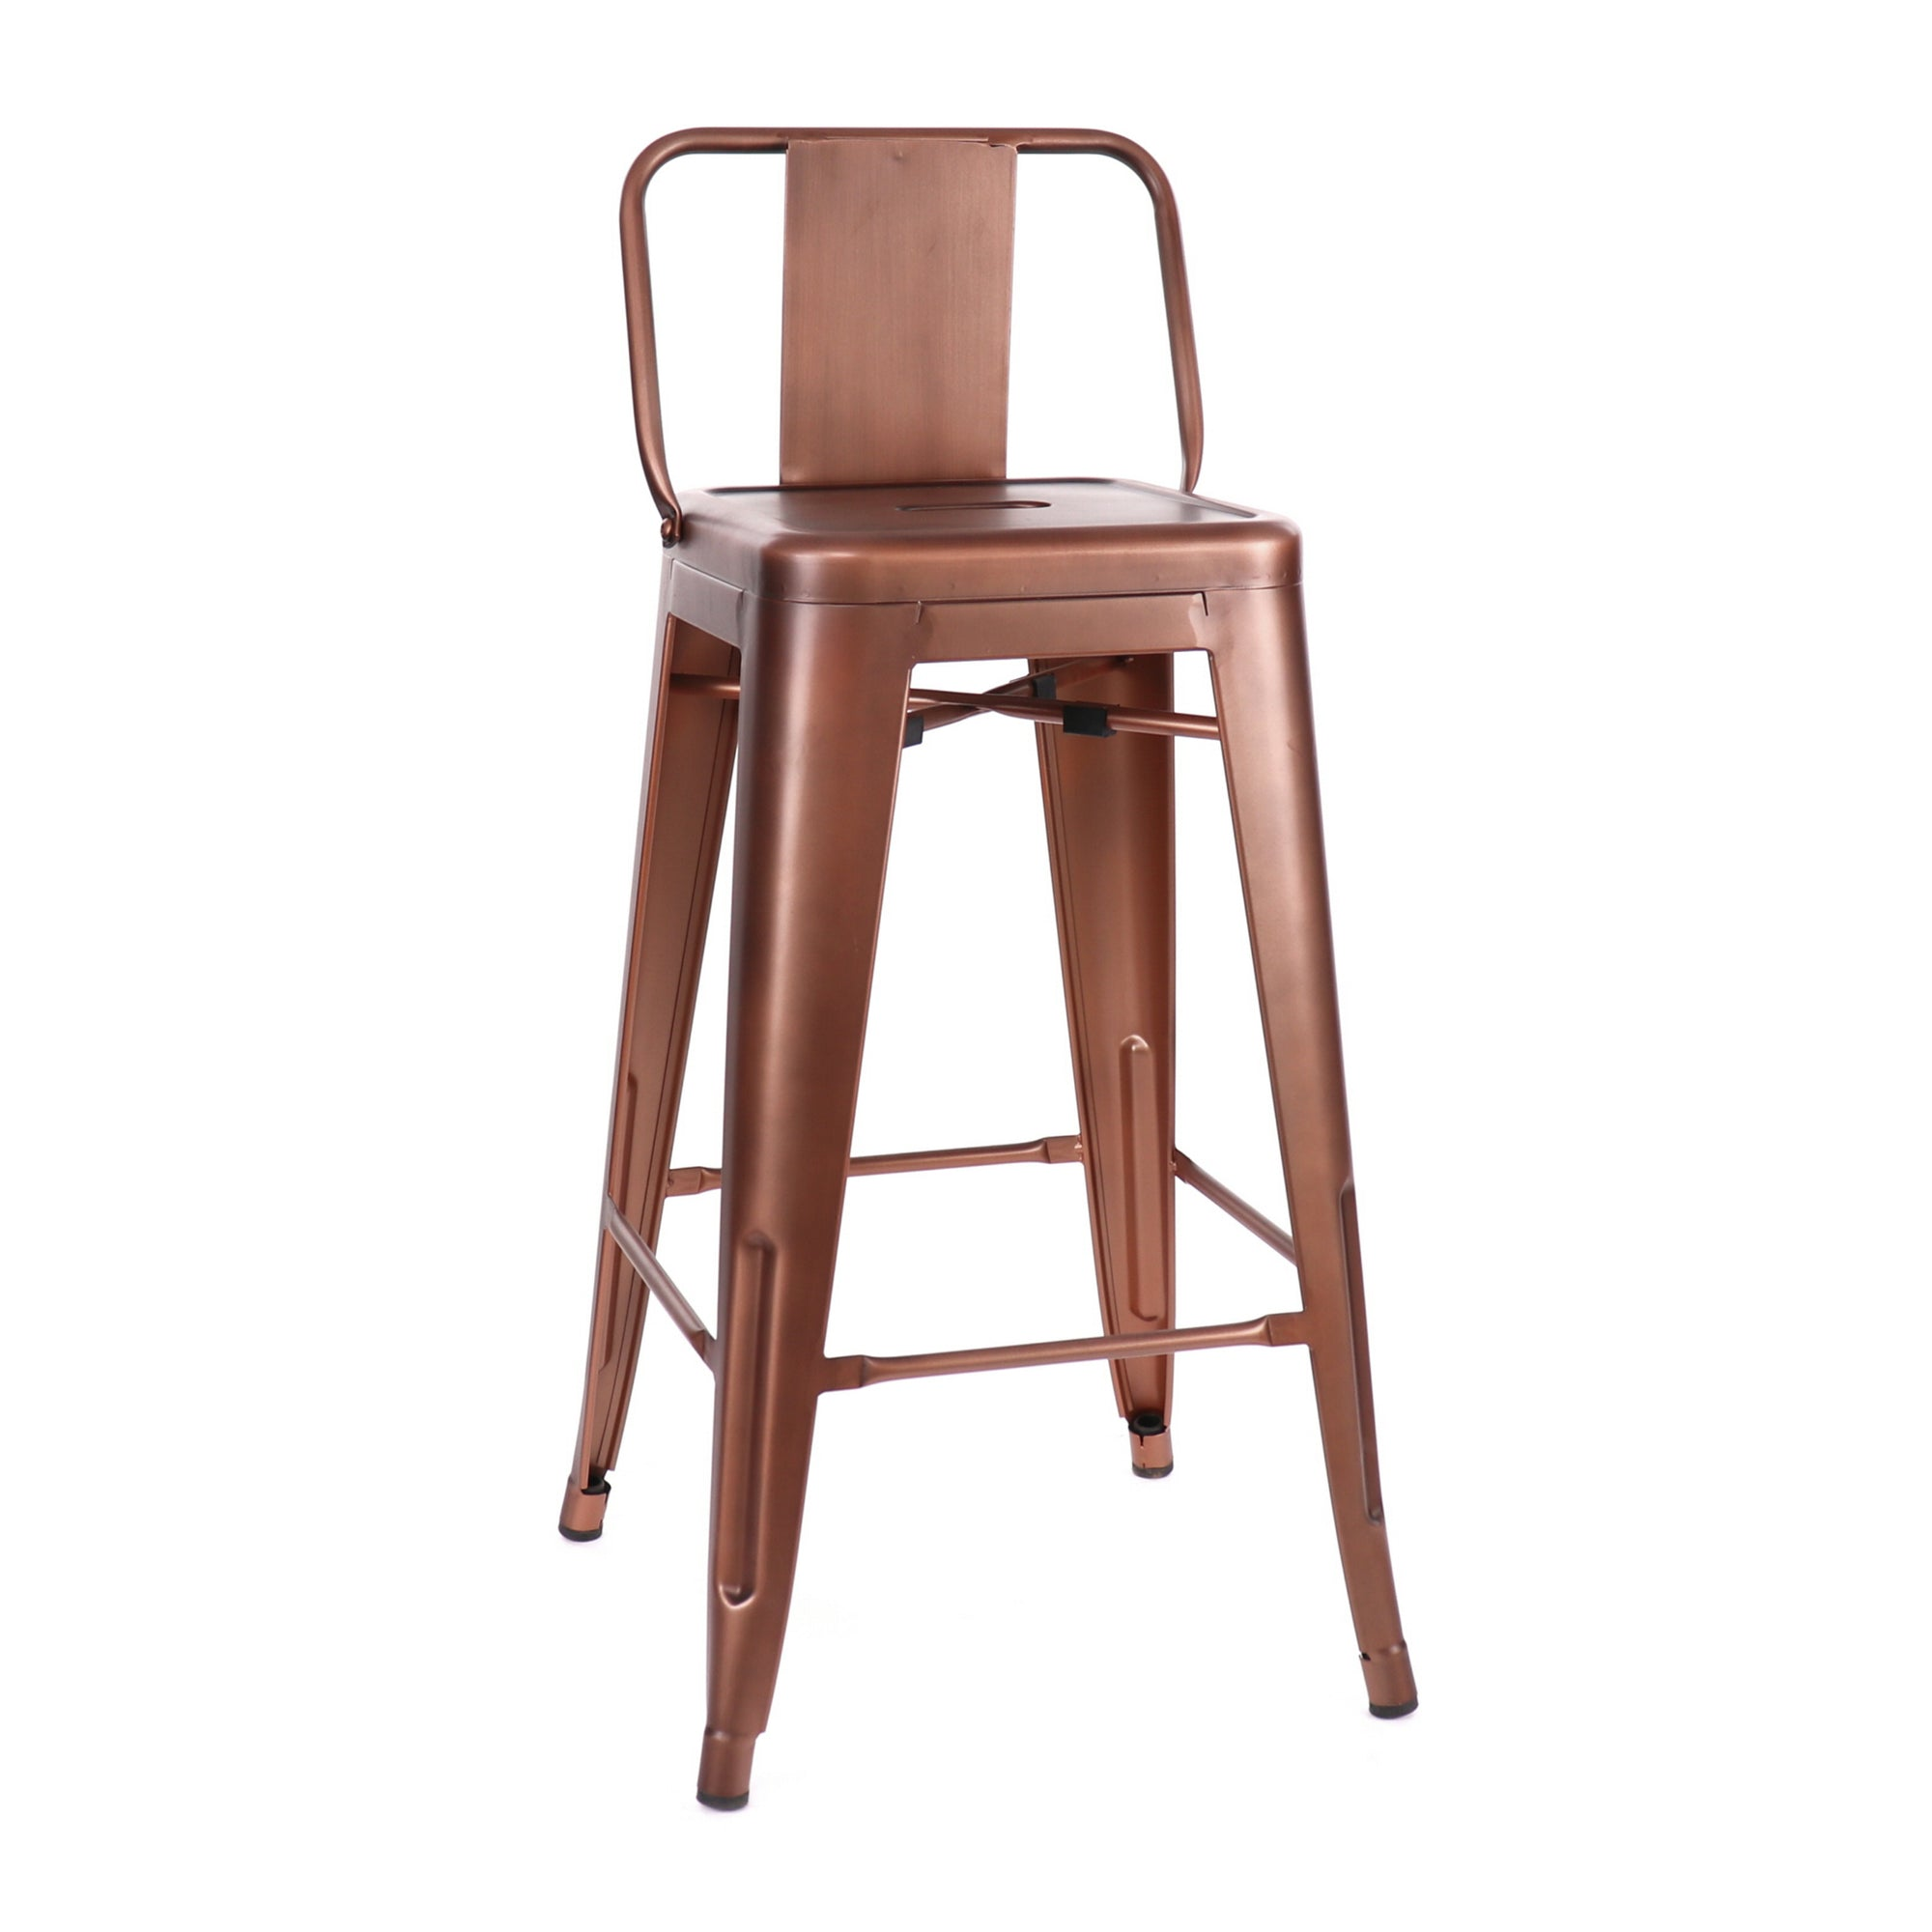 DesignLabMN-Dreux Low Back Steel Counter Stool 26 Inch (Set of 4)-Counter Stools-MODTEMPO